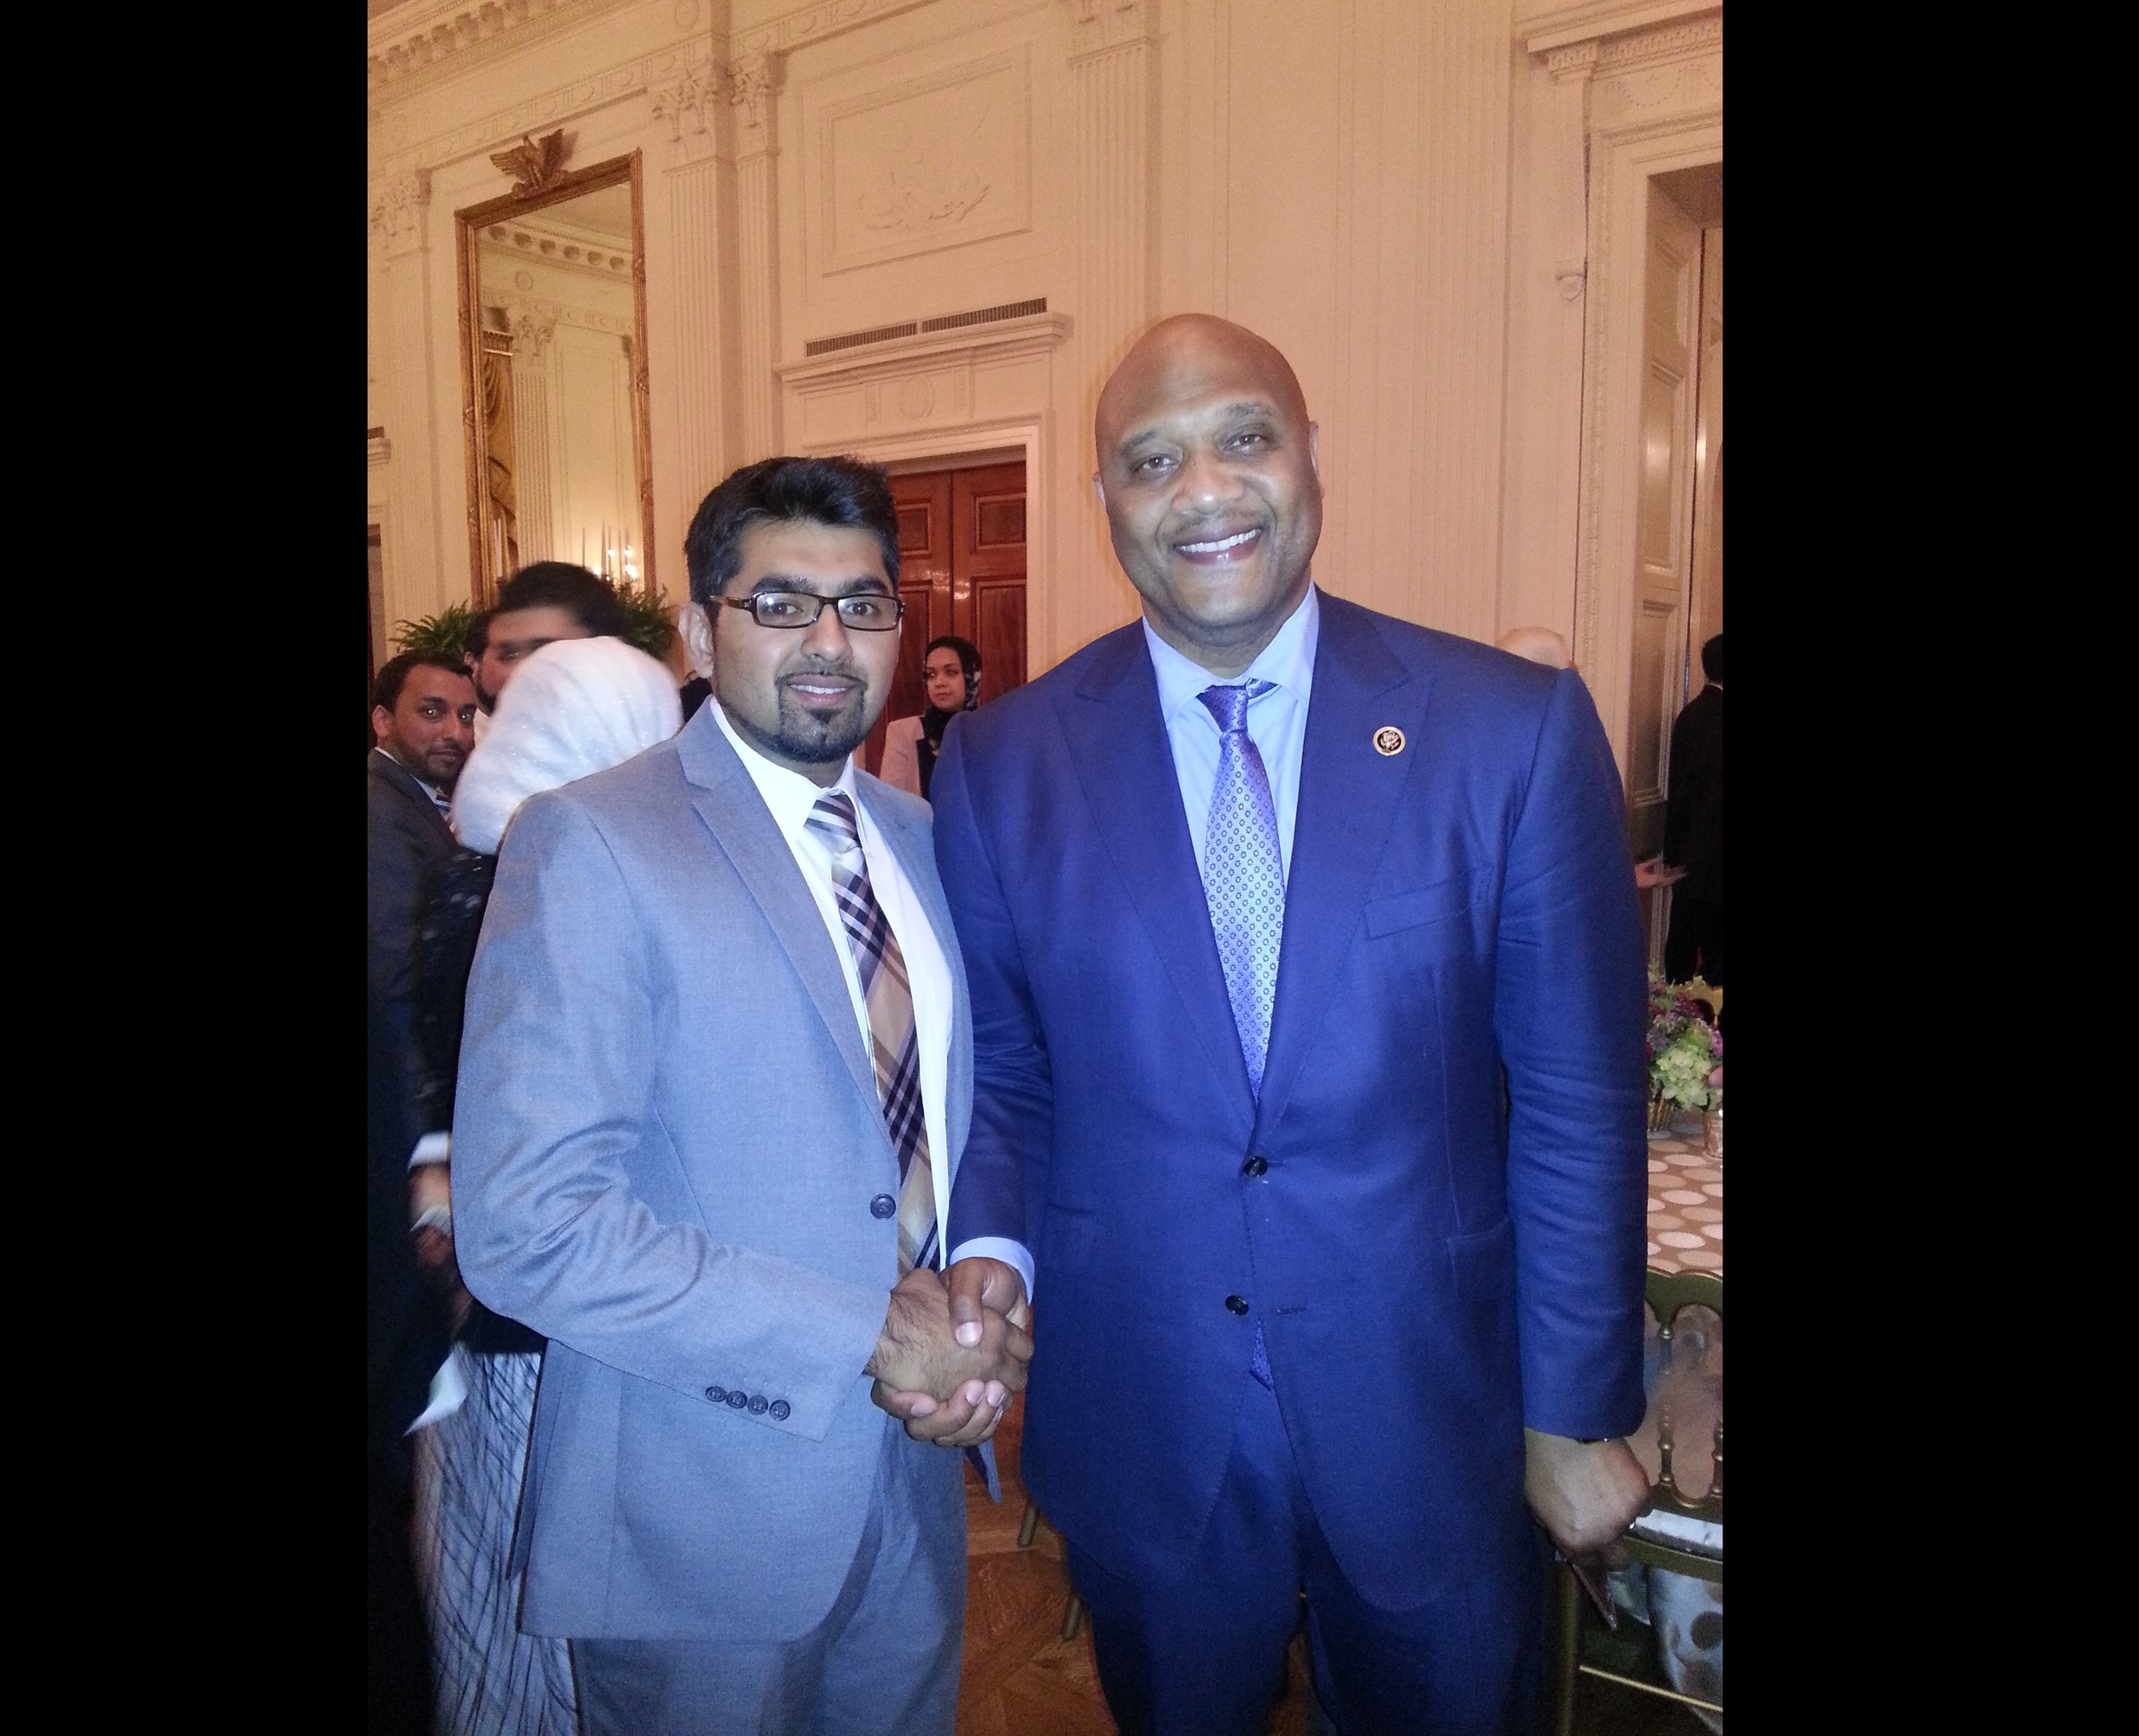 Dr. Chaudhry with Congressman Carson